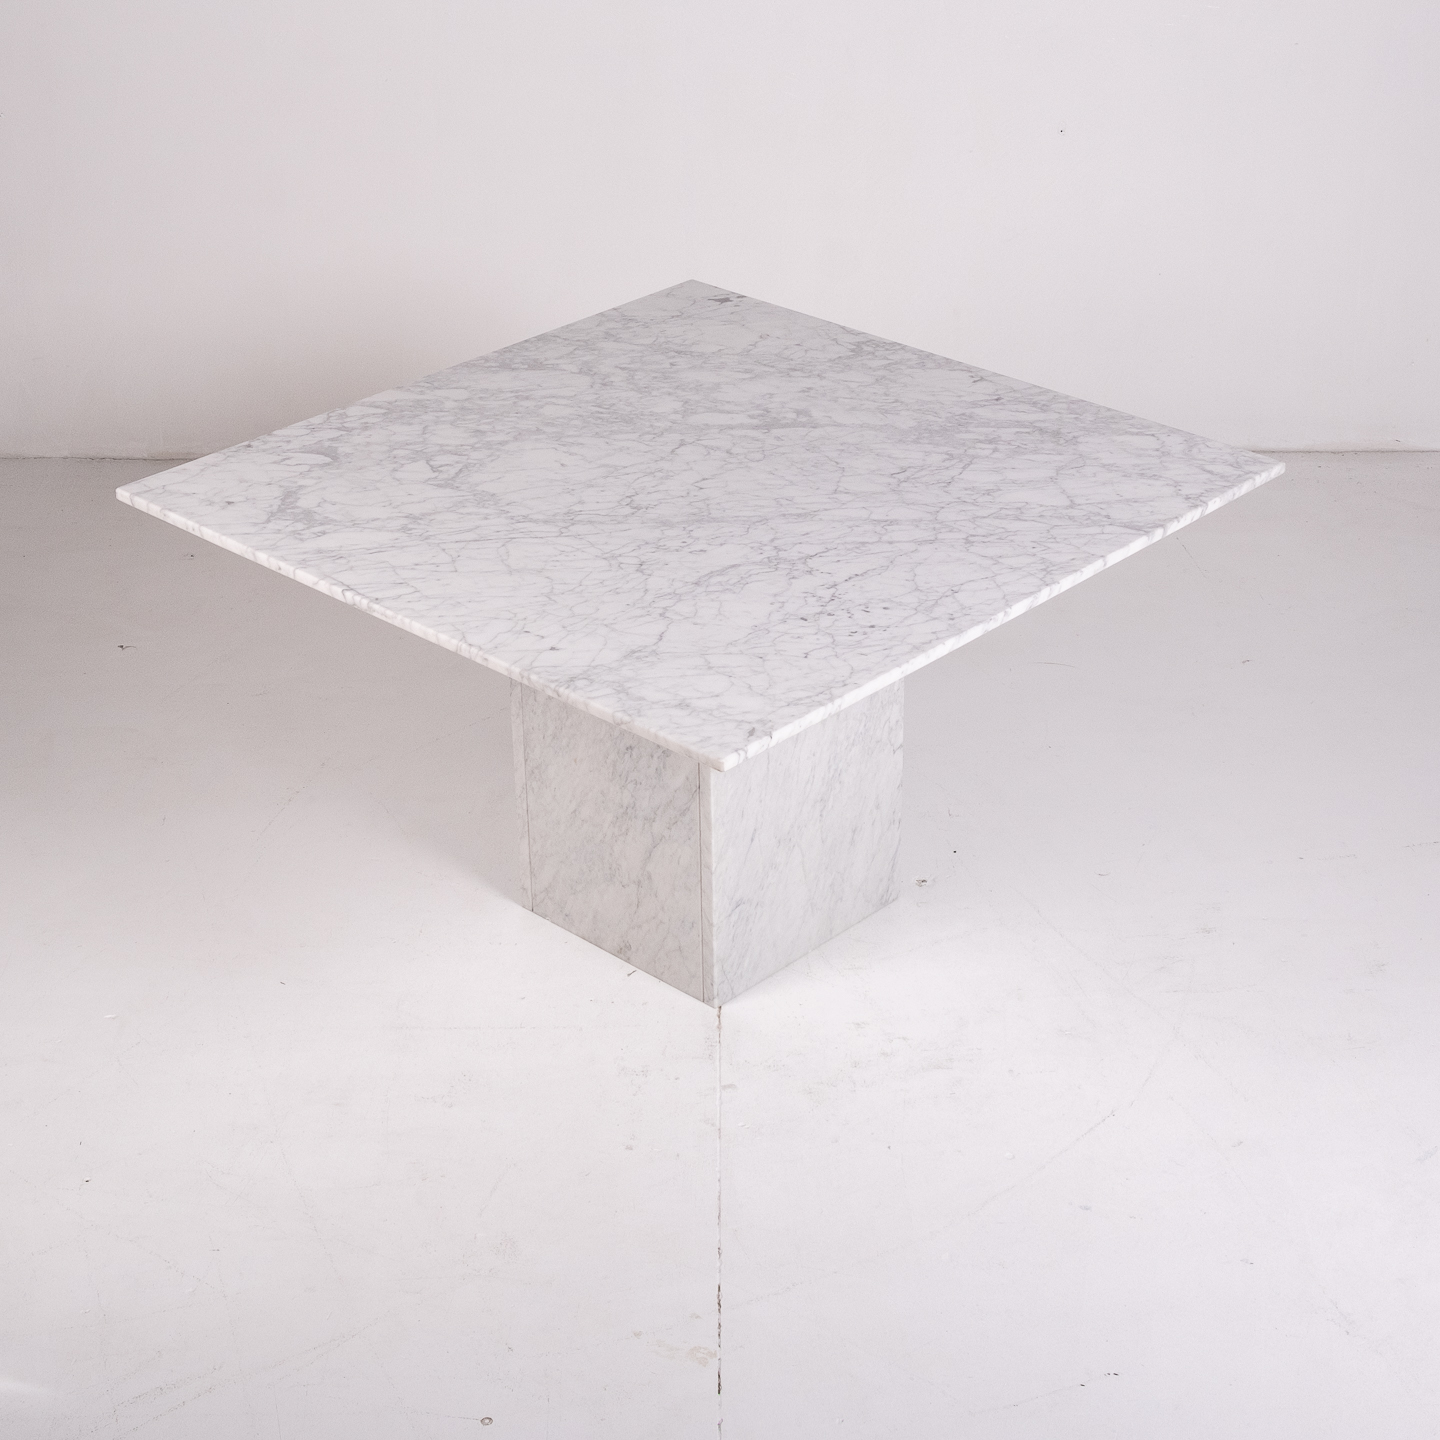 Square Dining Table In White Carrara Marble, Italy, 1980s 612